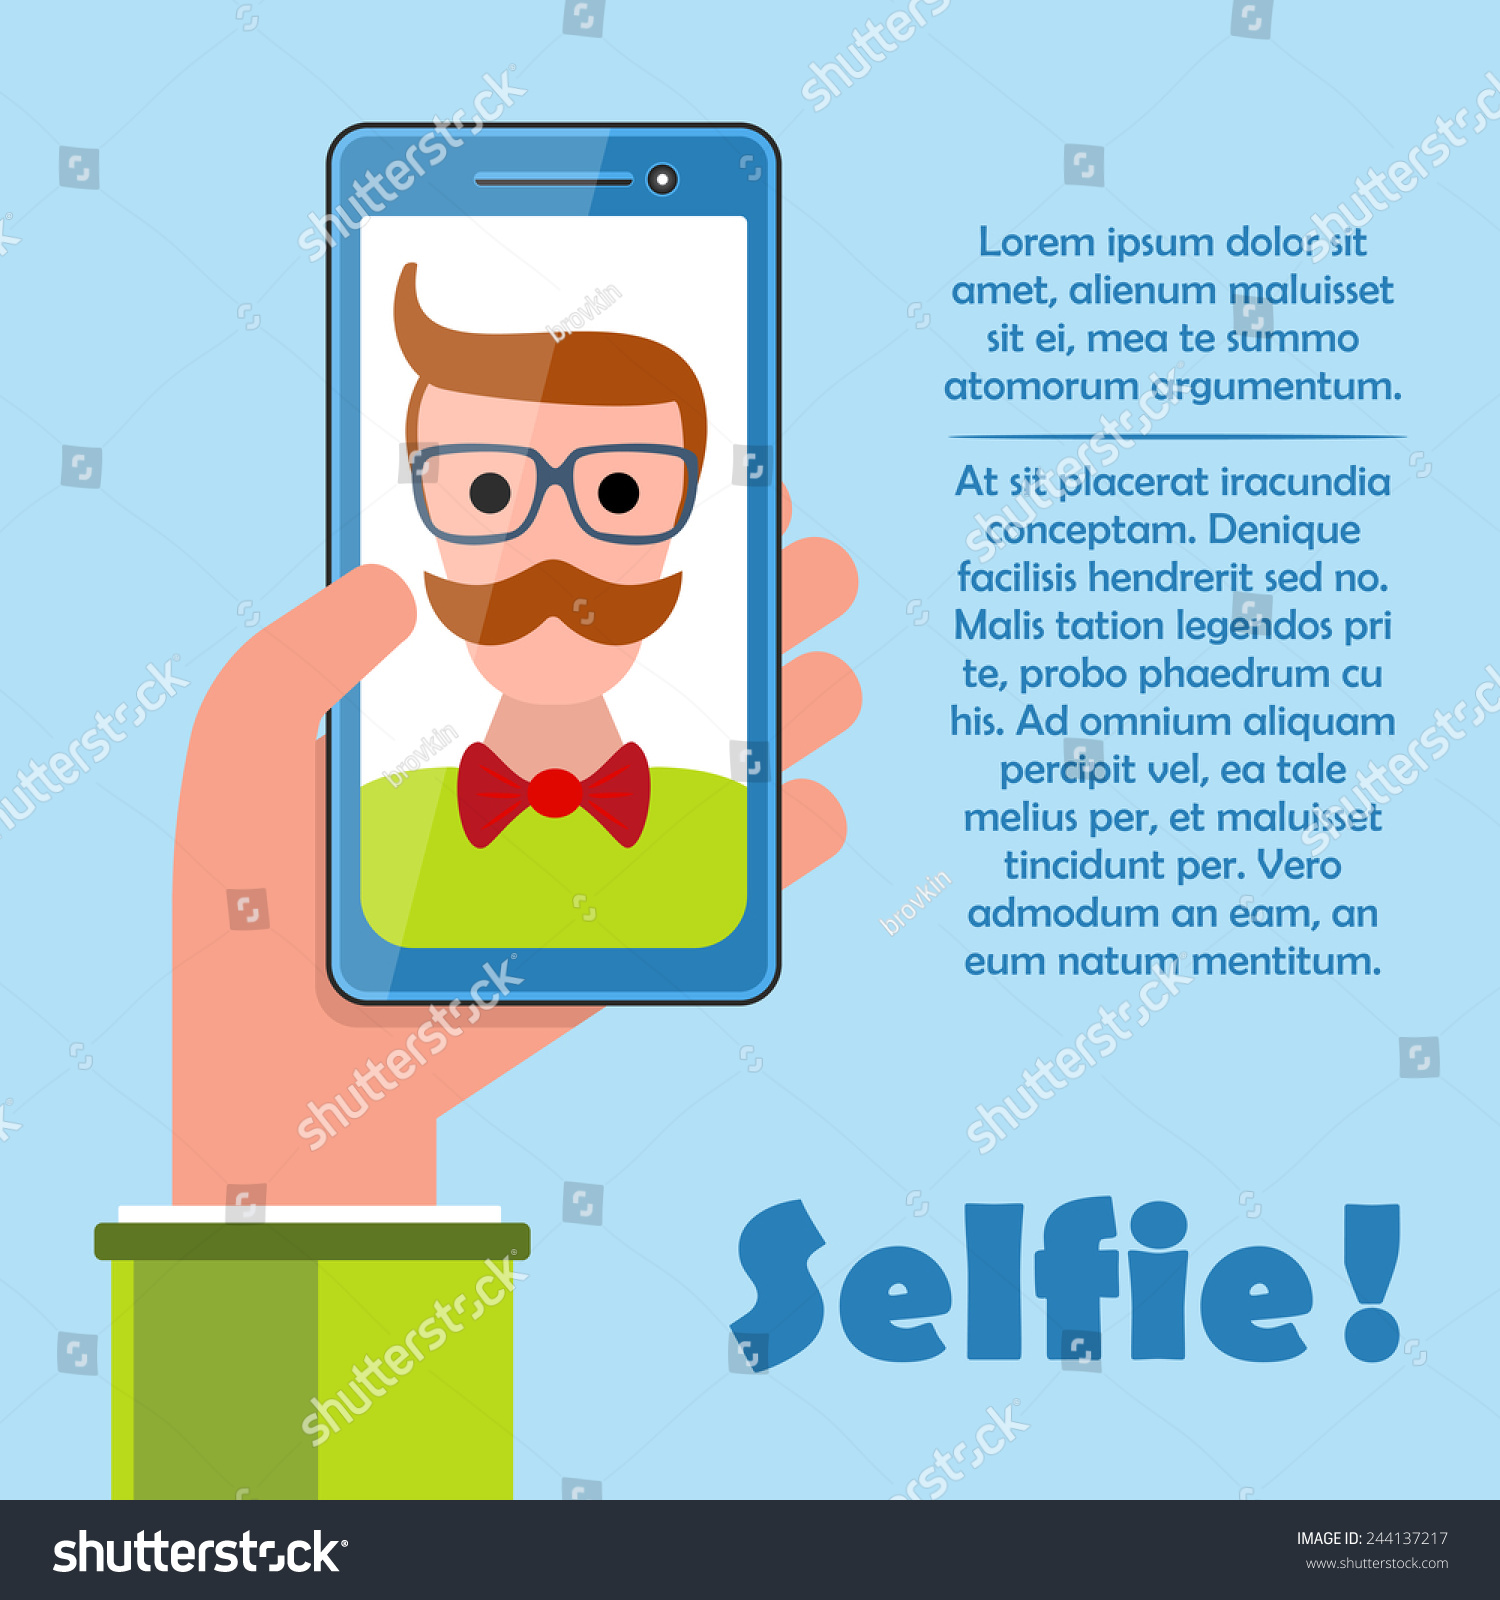 Selfie Poster Hipster Holding Smartphone Self Stock Vector